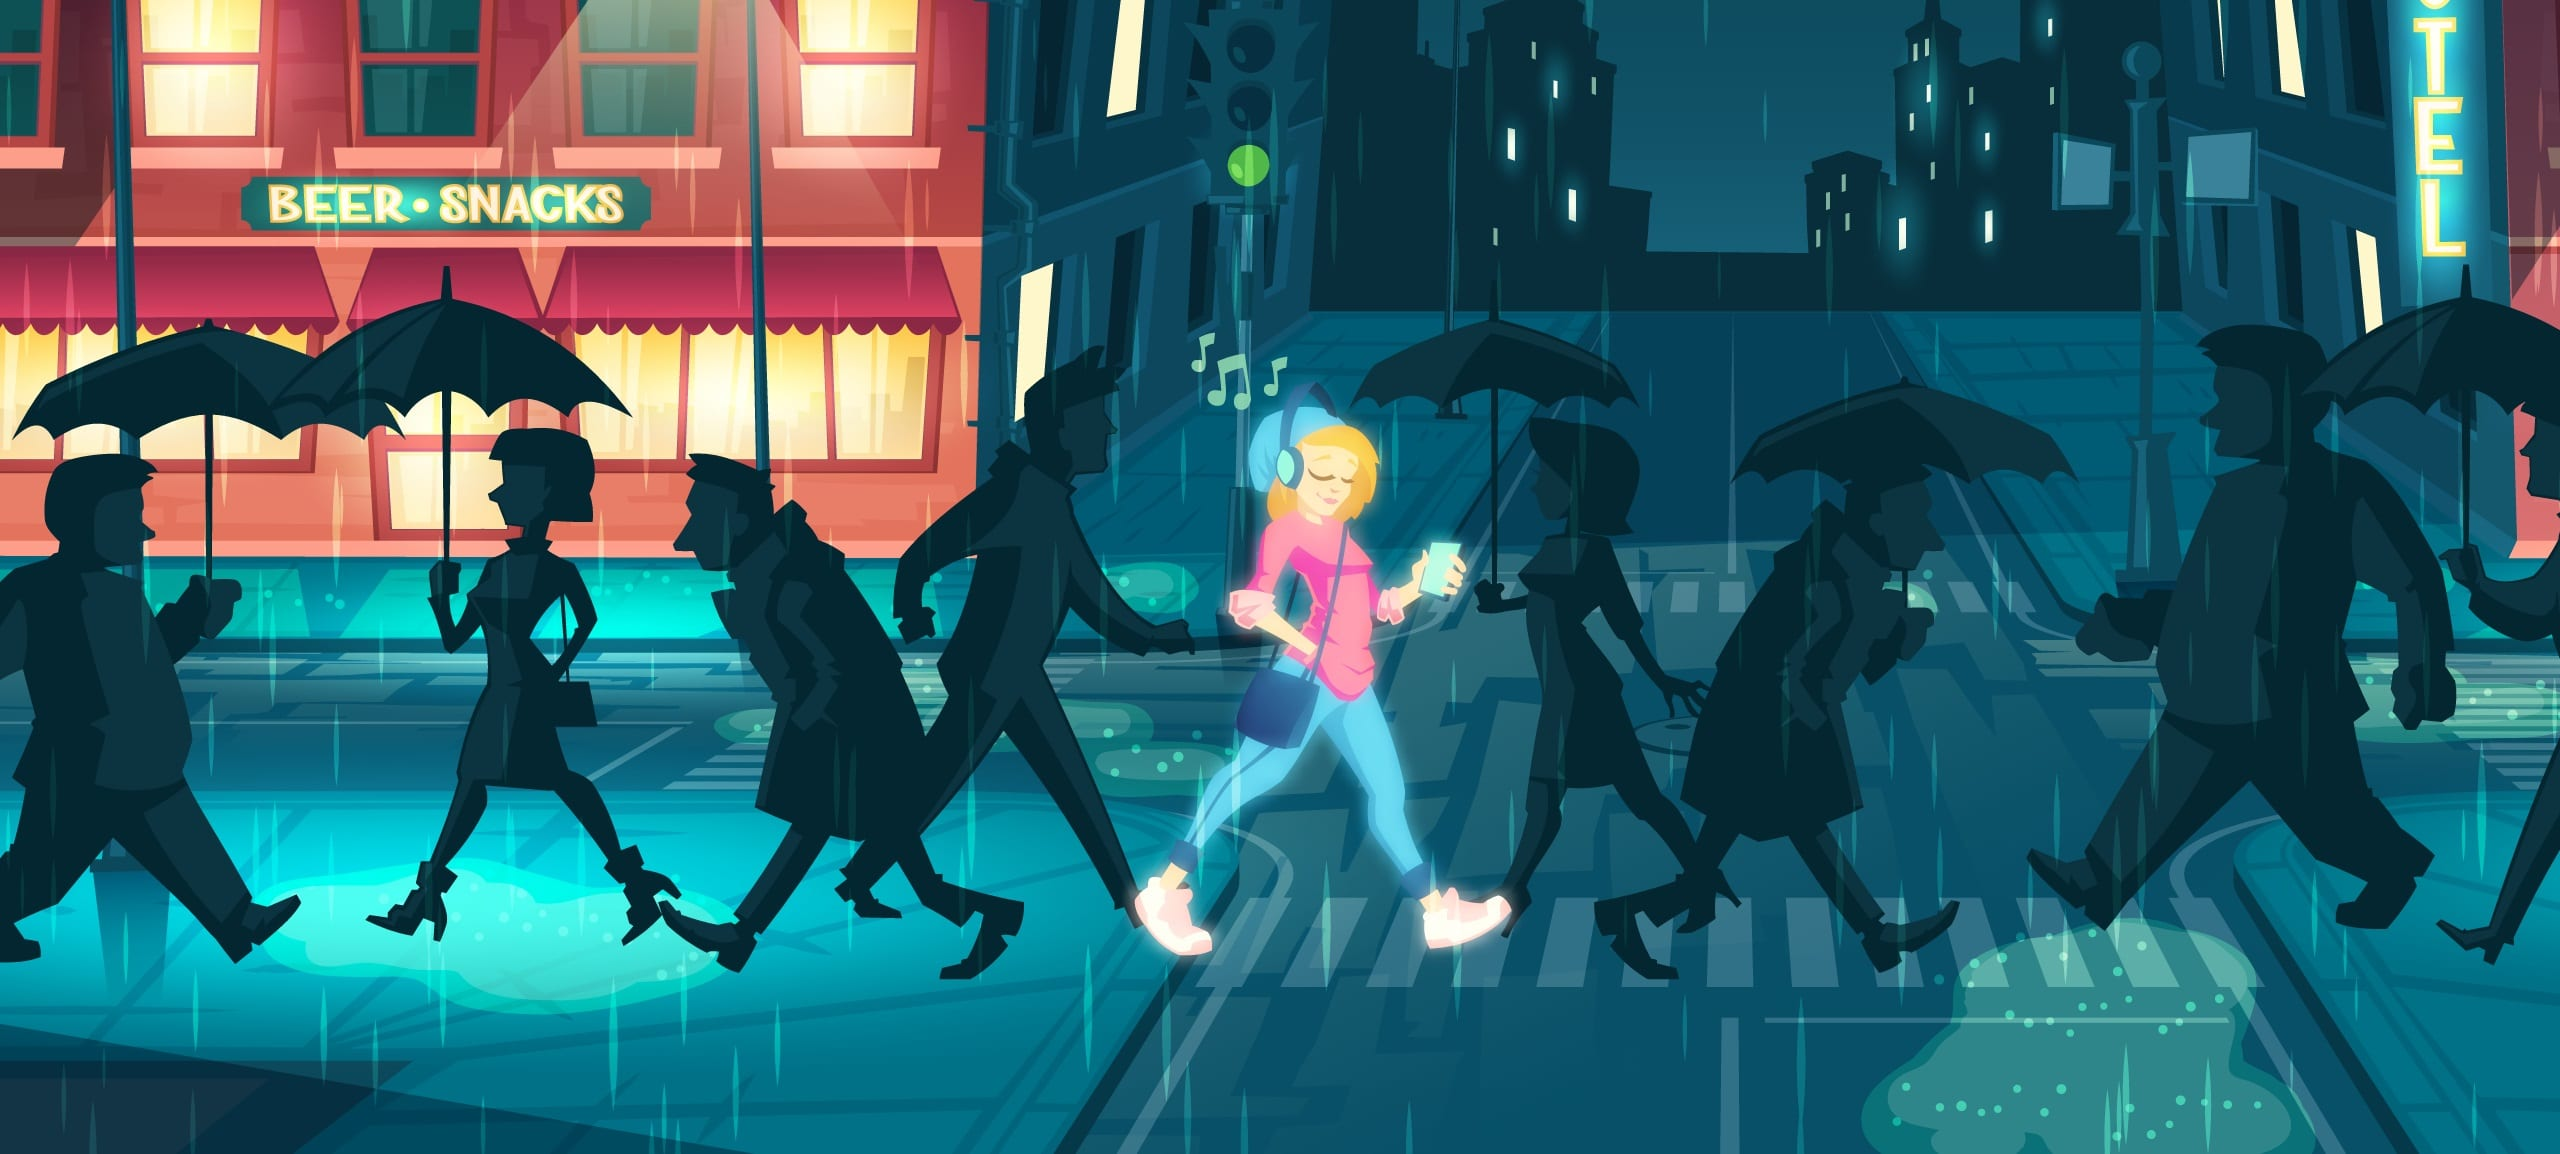 An illustration of a woman with positive Vibes while walking down a dark street full of gloomy people.